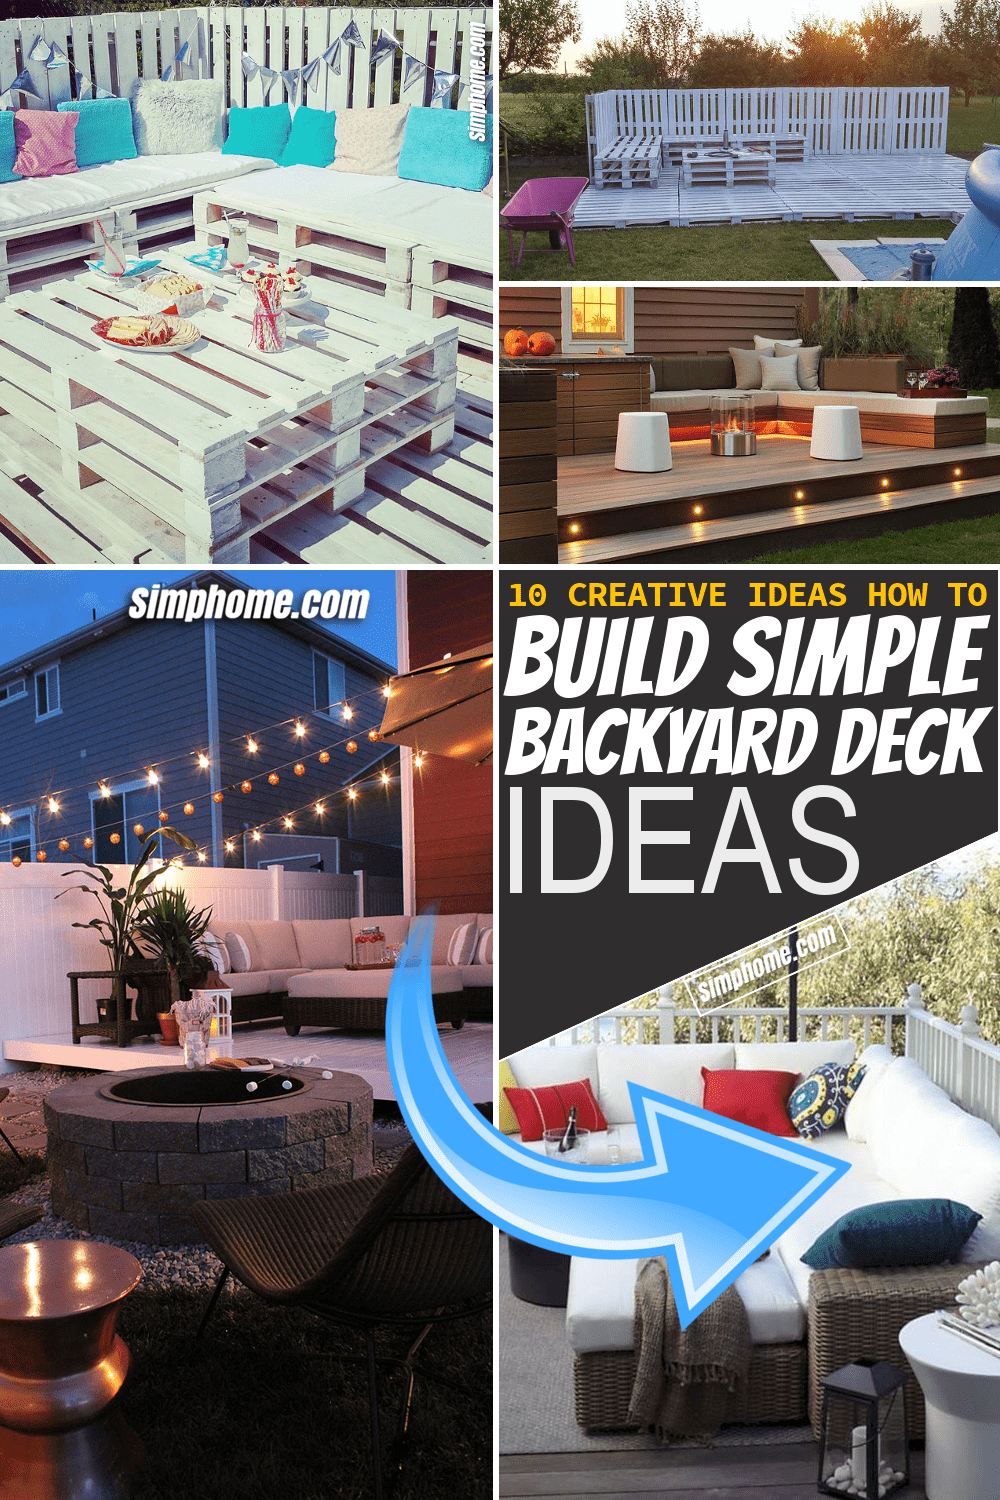 Simphome.com 10 Simple DIY Backyard Deck Ideas Pinterest Featured Image